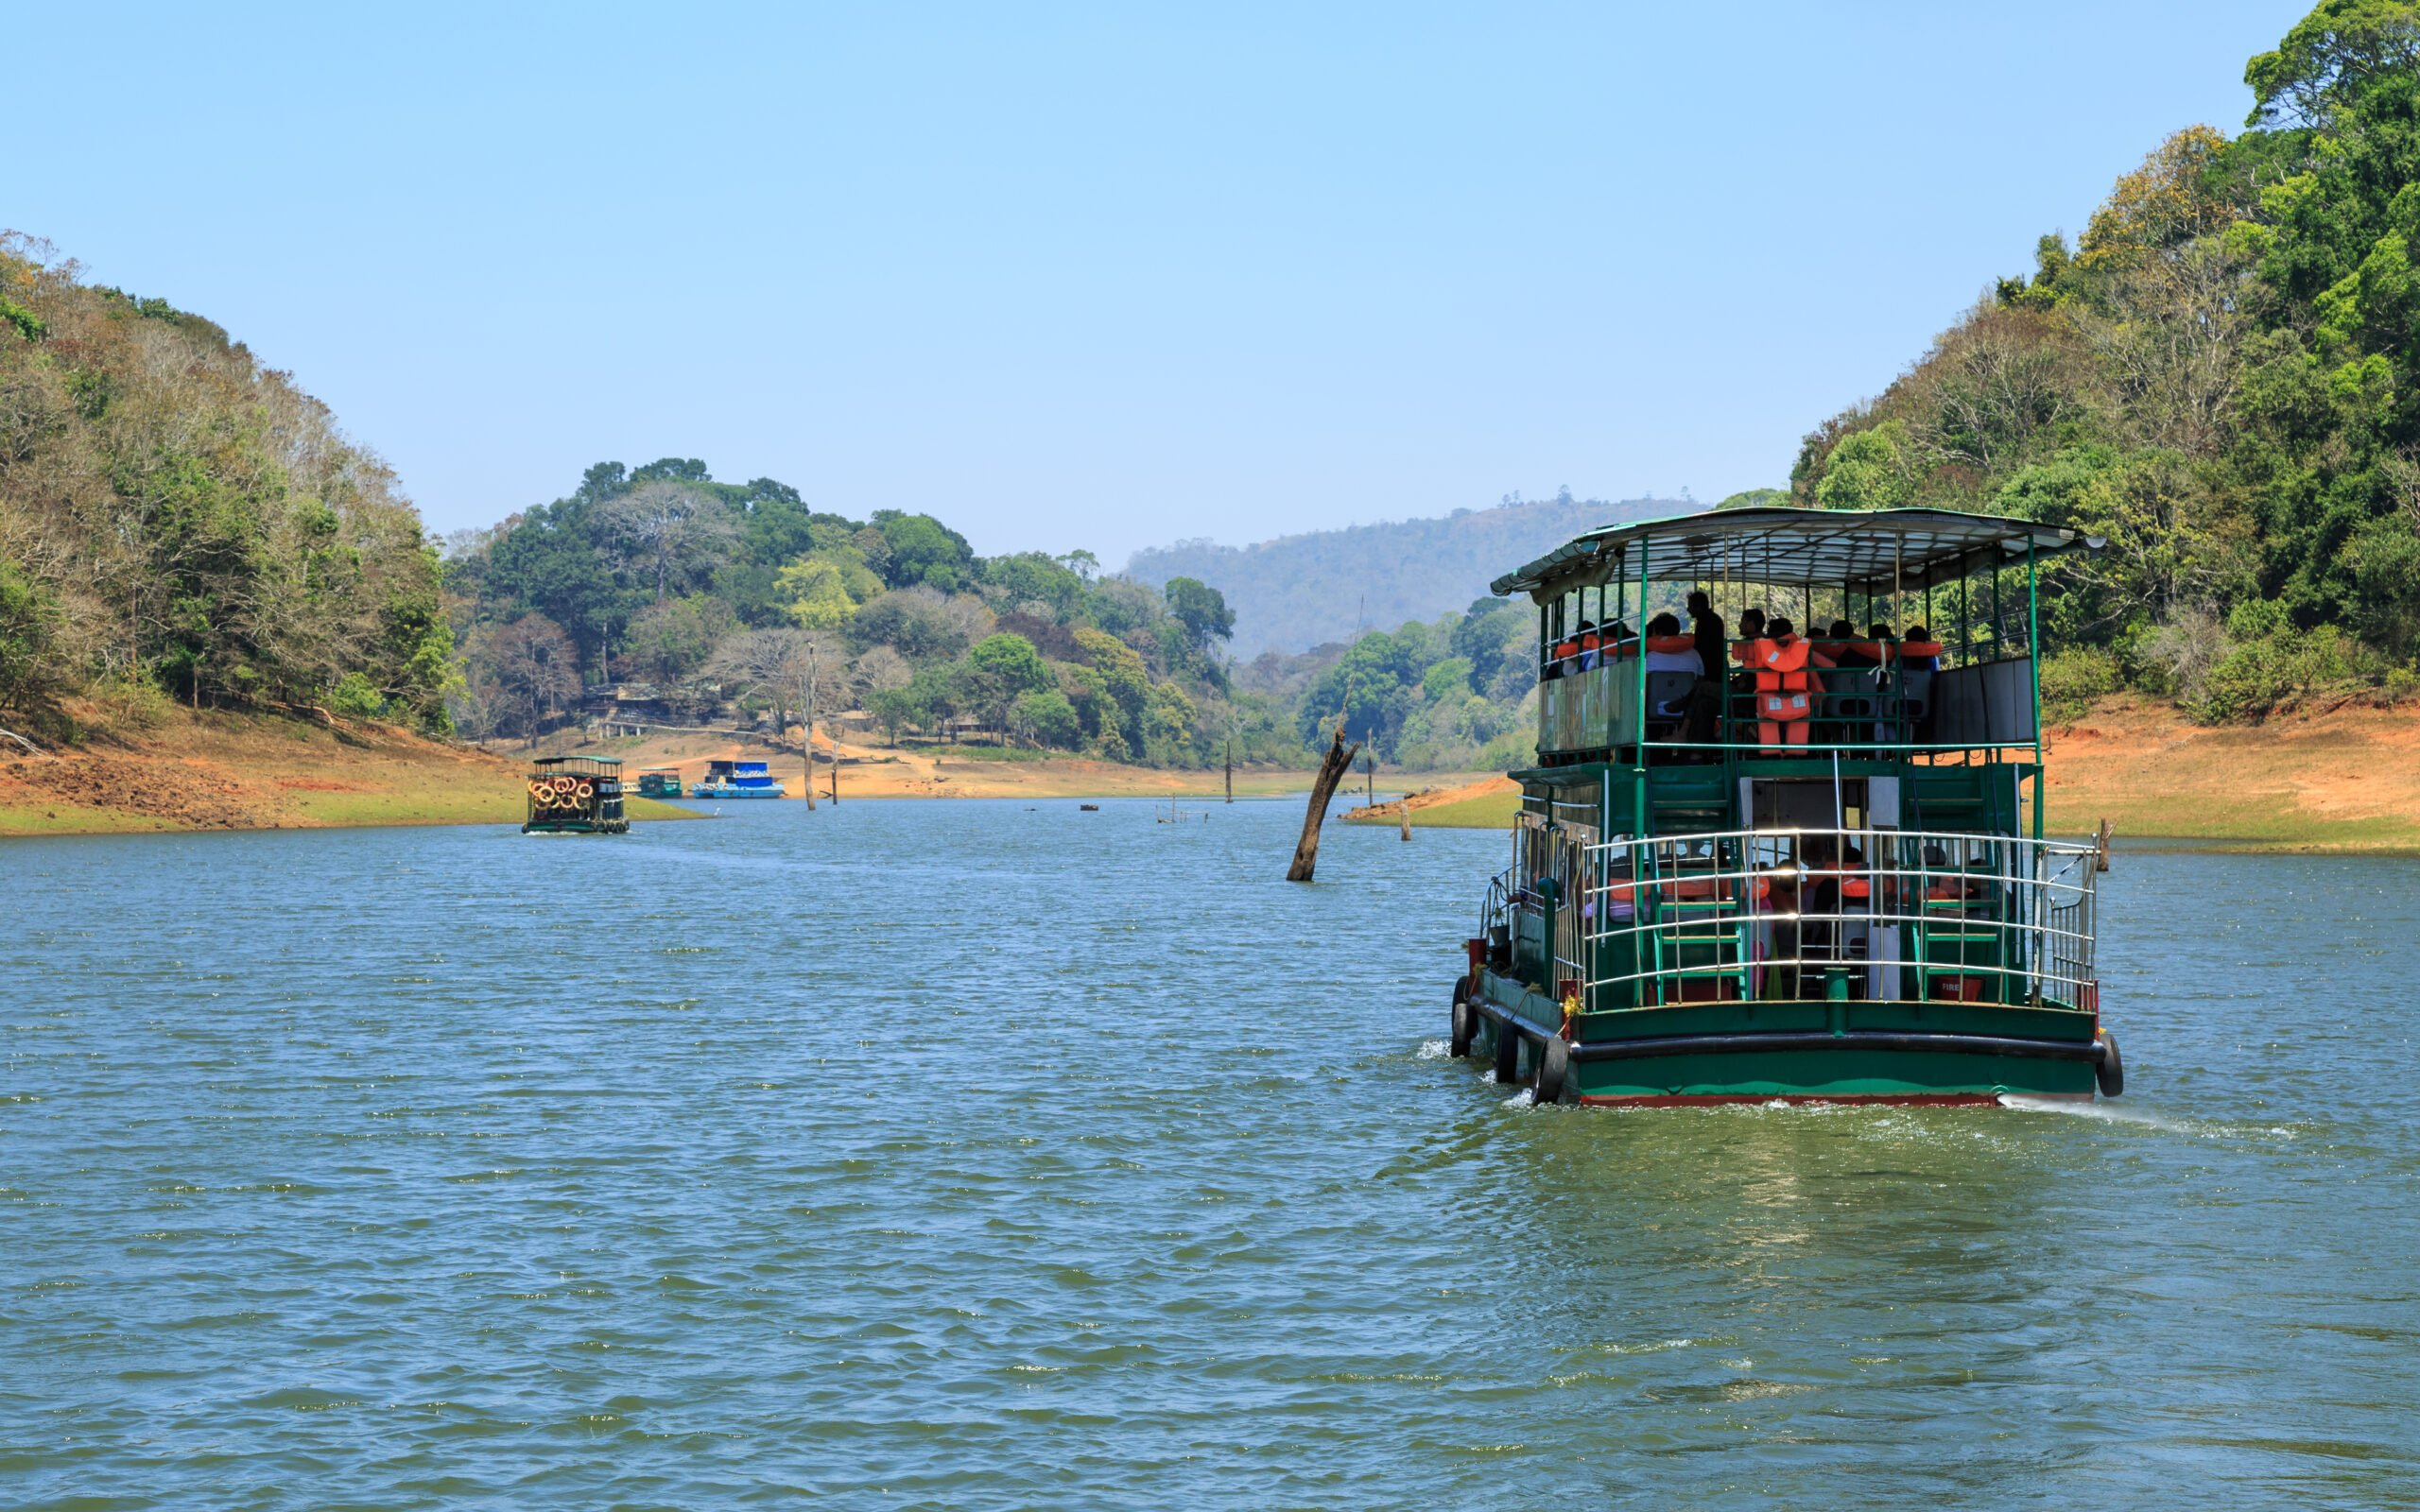 Take A Boat Cruise In Periyar Sanctuary To The Dam Catchment Area For Wildlife Sighting In Their Natural Habitat. In Our 3 Day Wildlife And Culture Tour Of Thekkady From Kochi